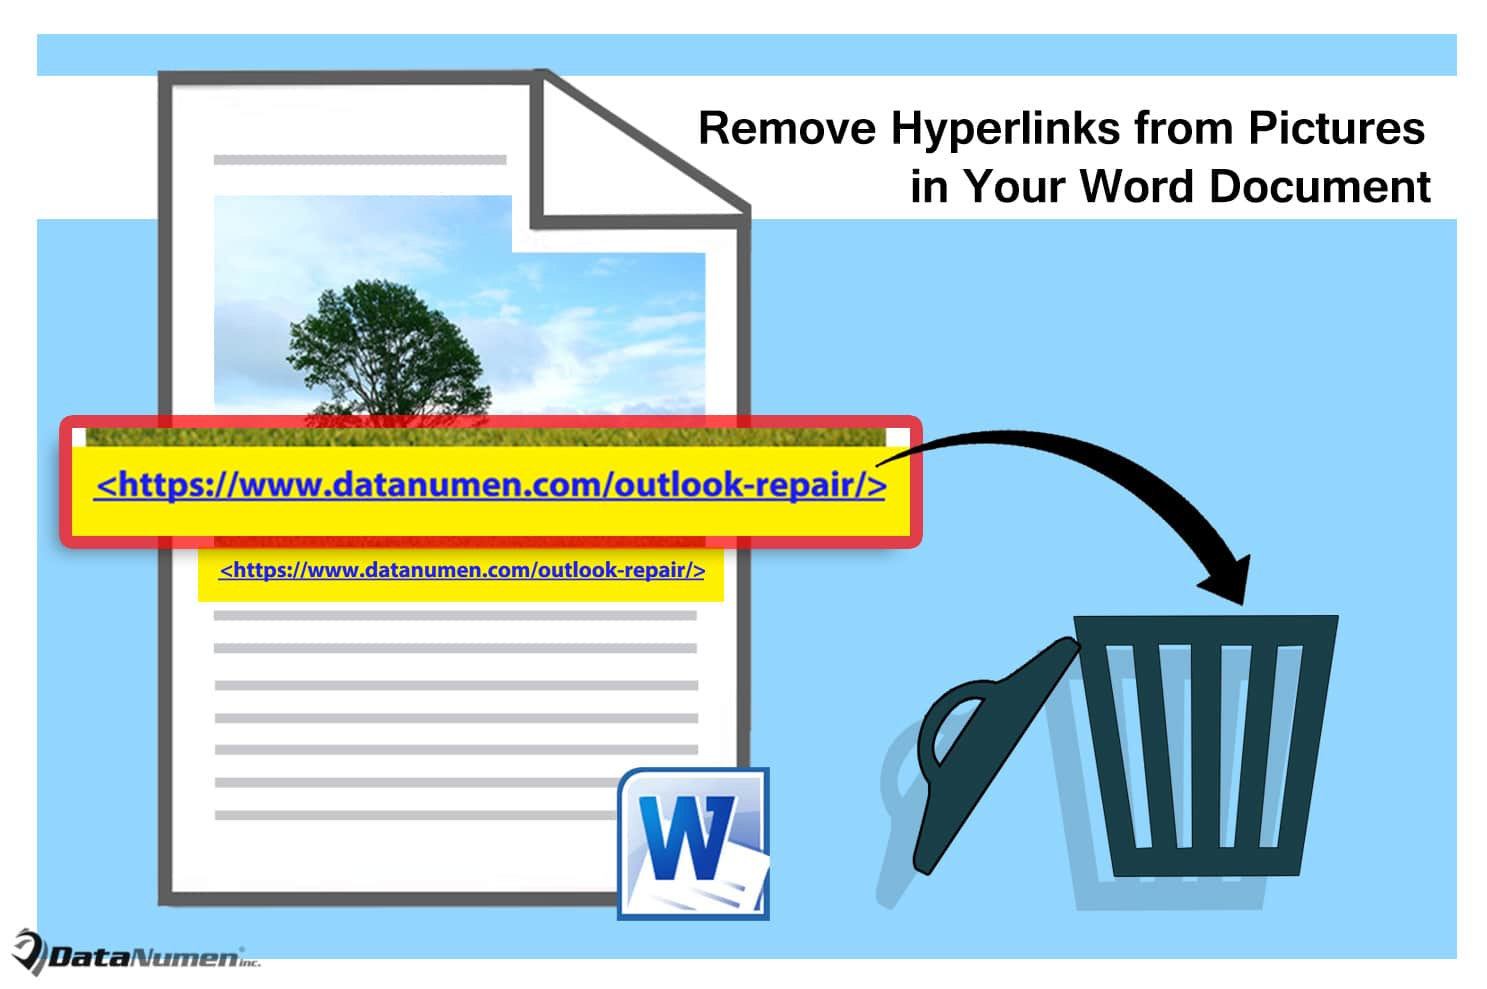 Remove Hyperlinks from Pictures in Your Word Document